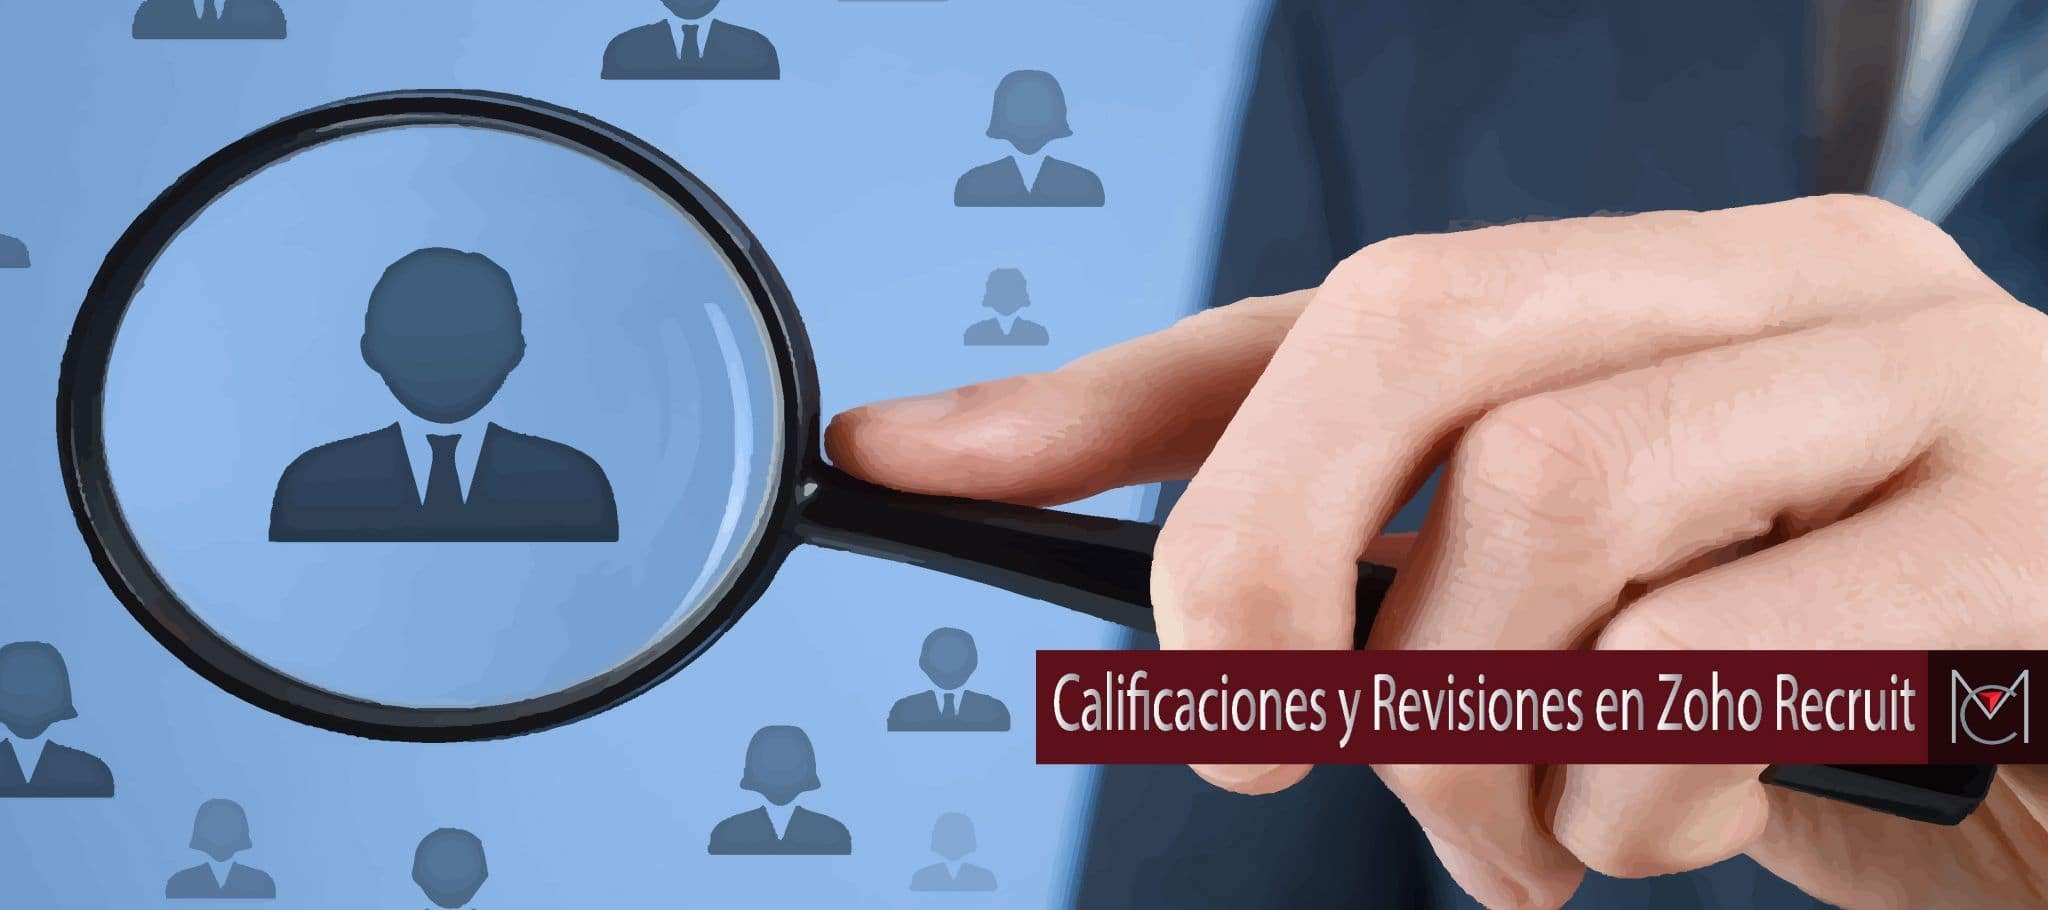 calificacion-revision-zohorecruit-01